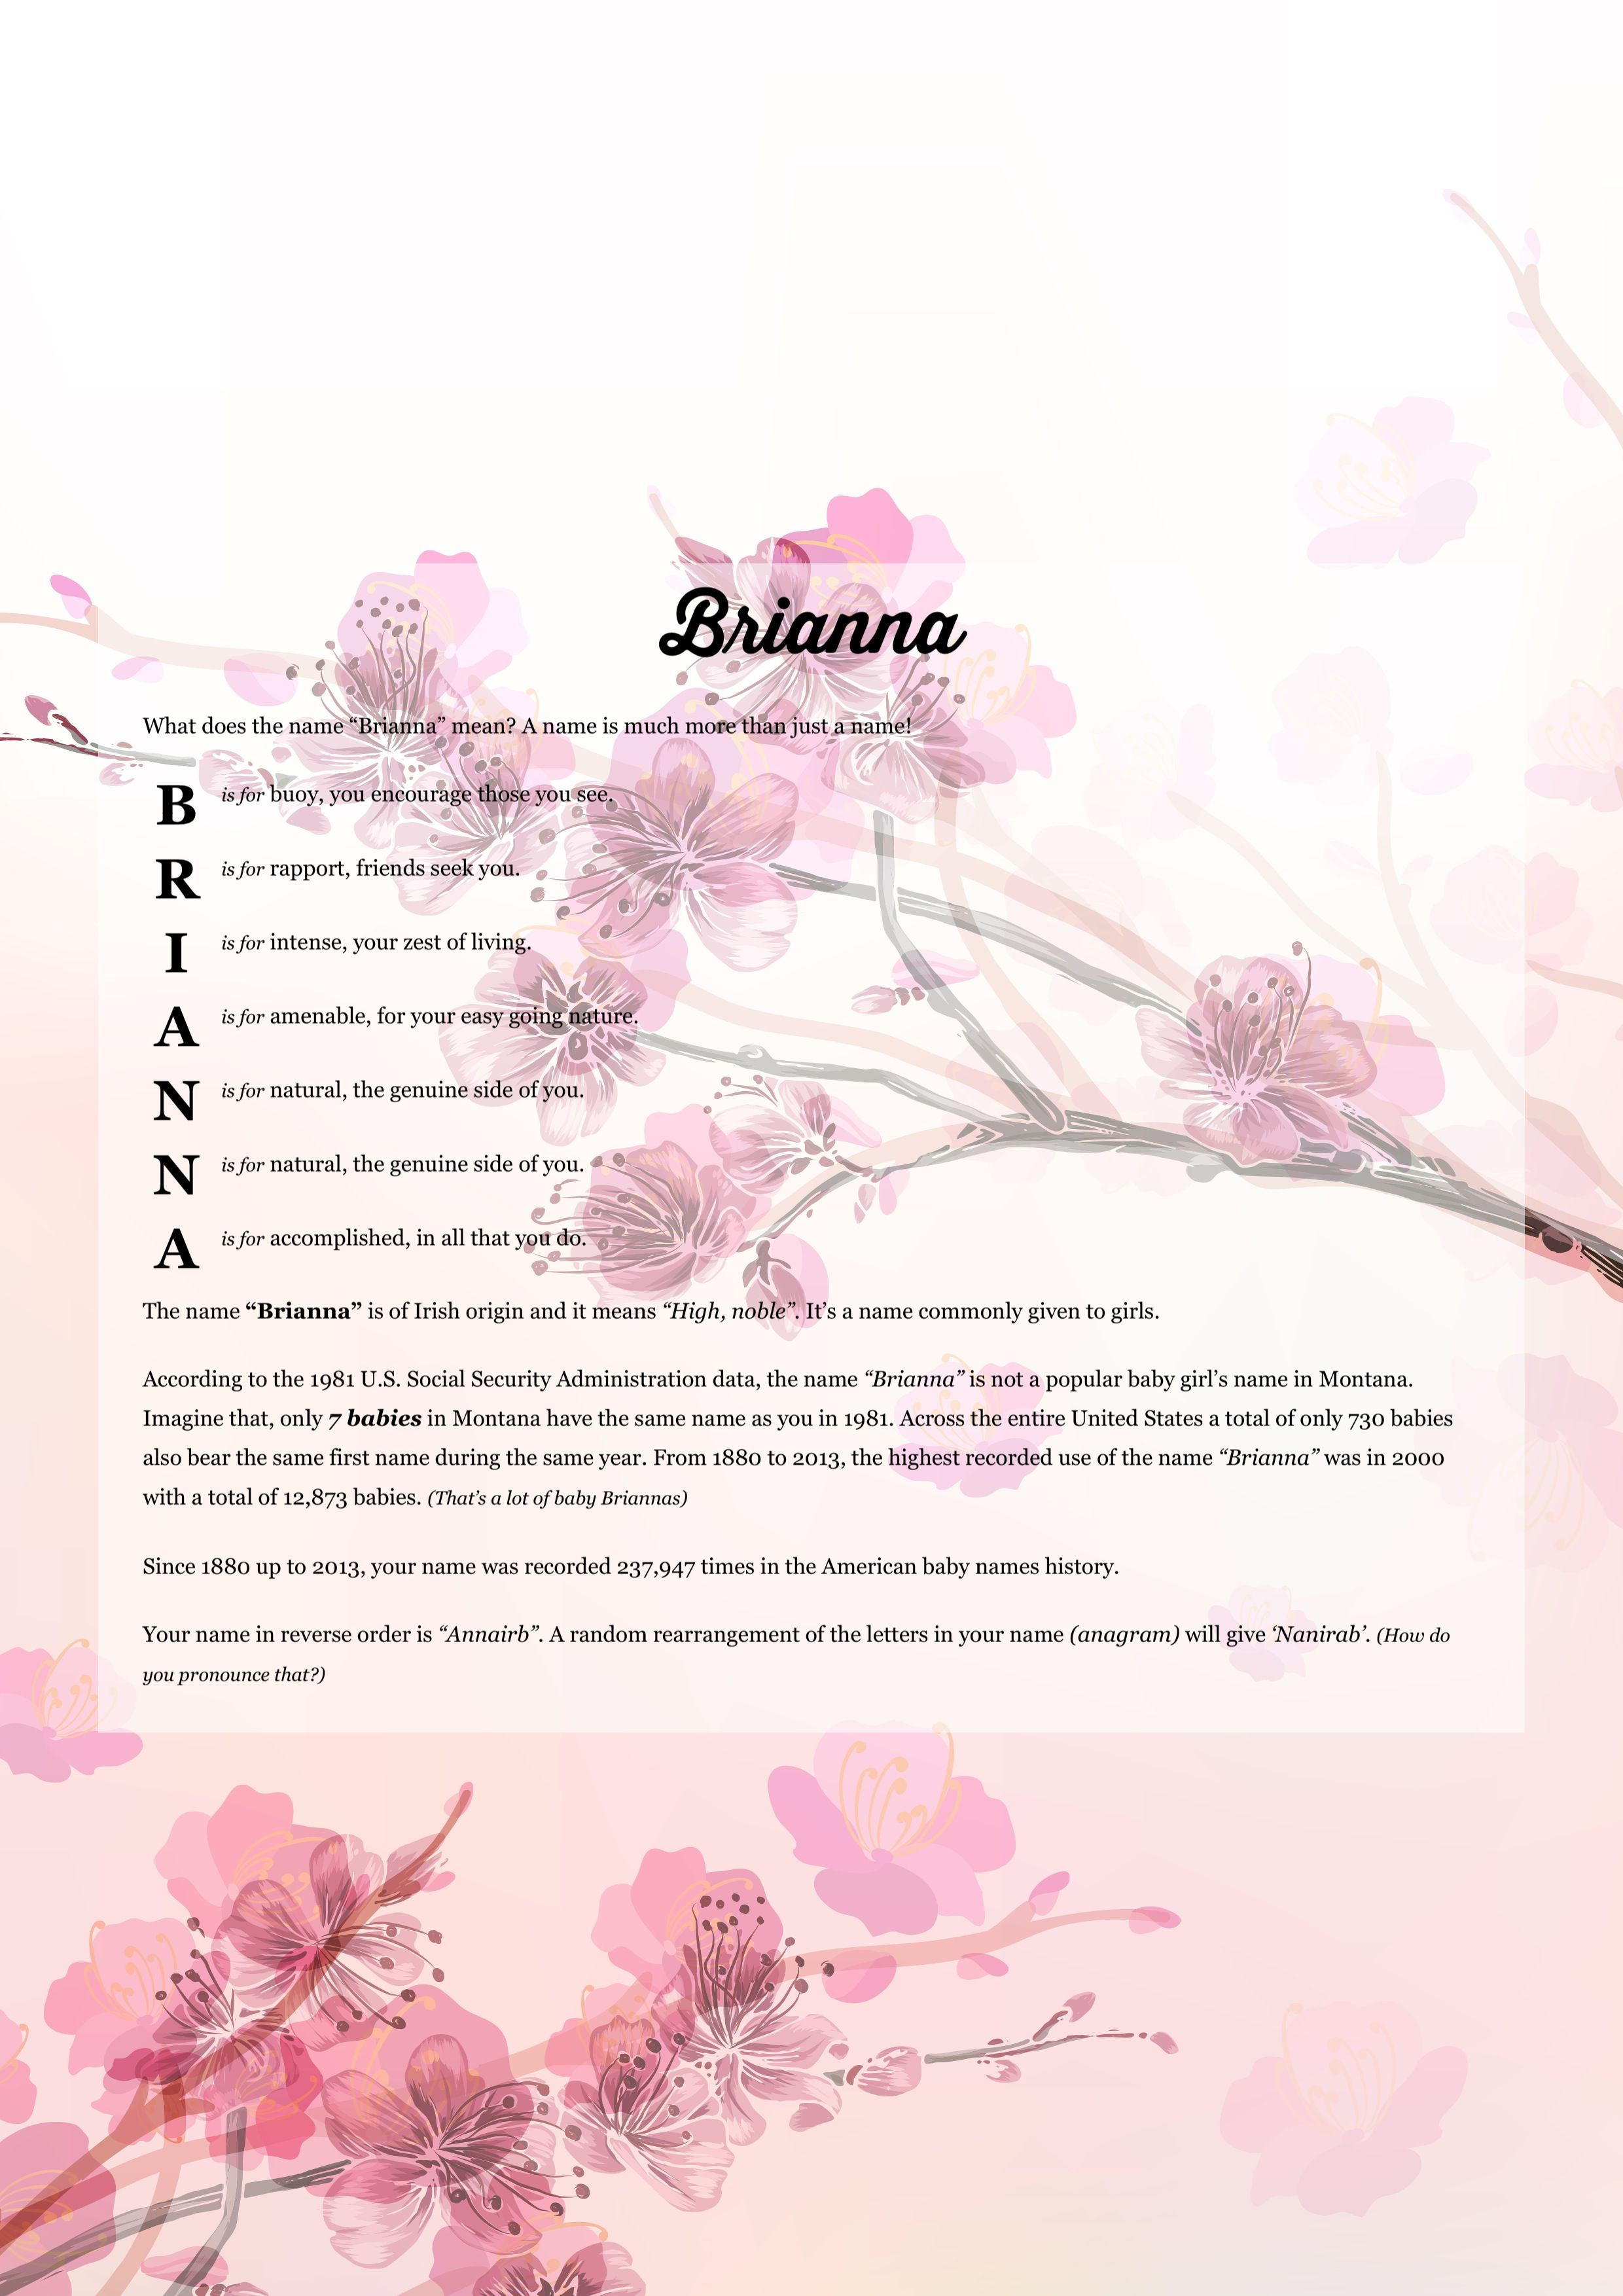 The Namemeaning Of Brianna Using Cherry Blossom From The Project Pack Flowers Unique Giftideas And Perso Wall Quotes Decals Names With Meaning Wall Quotes